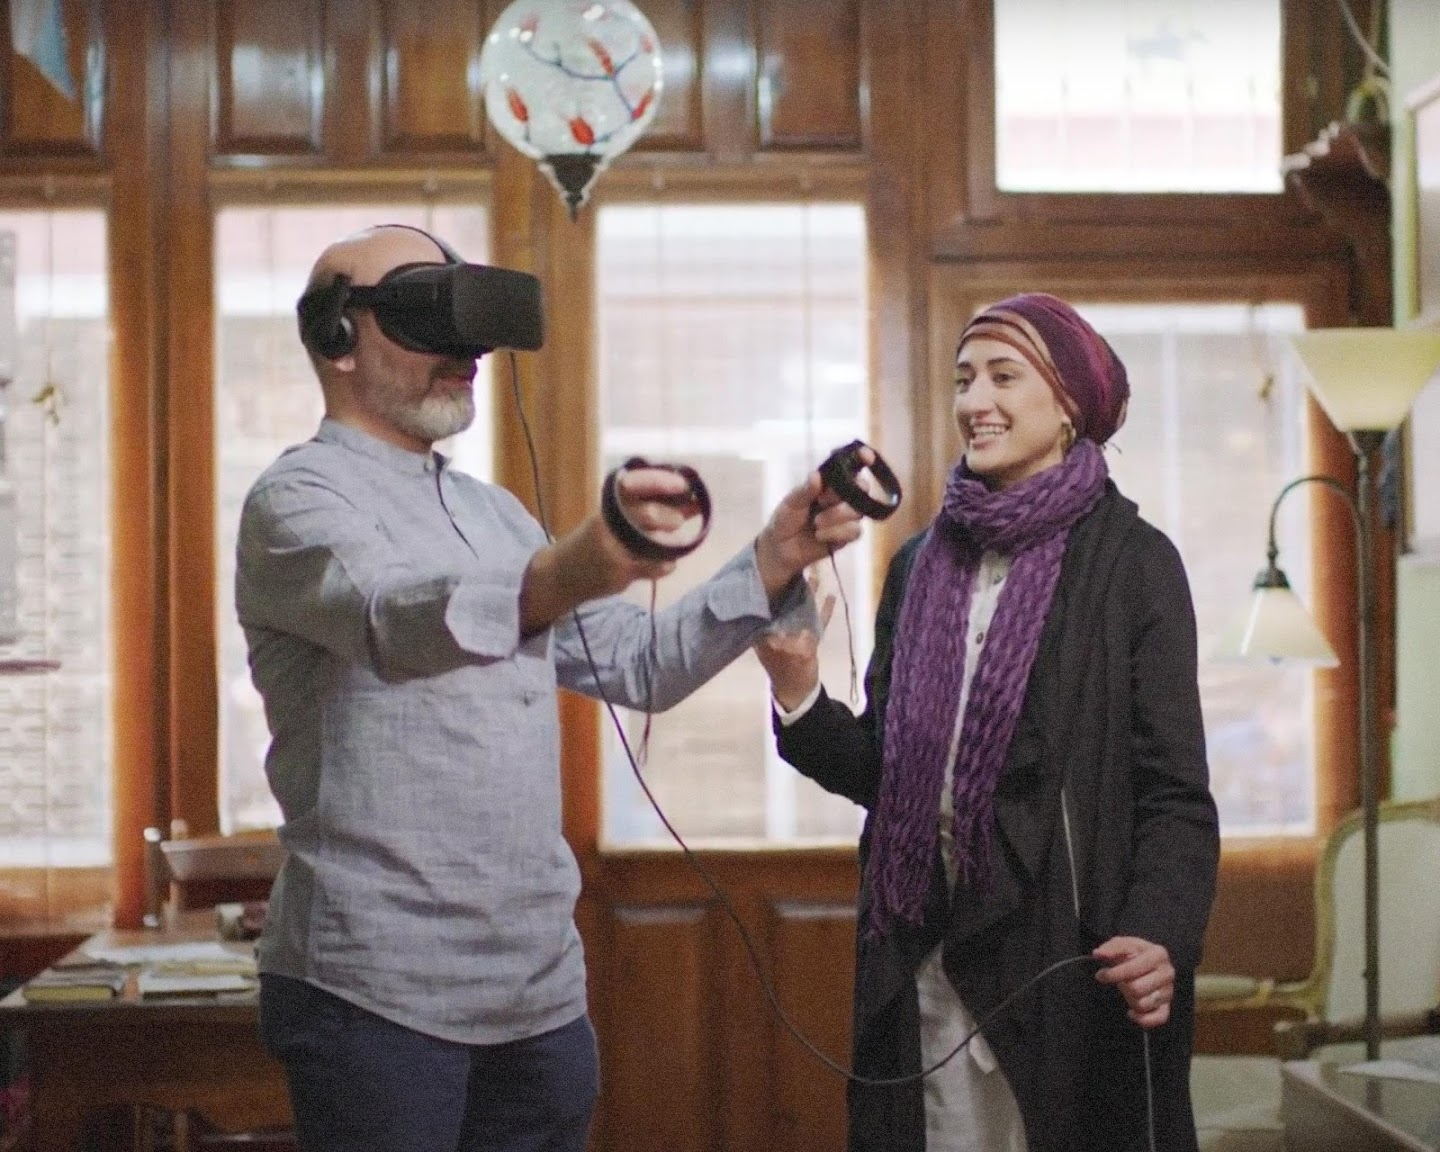 Efdaluddin wearing VR headset to view Soraya's calligraphy message in 3D